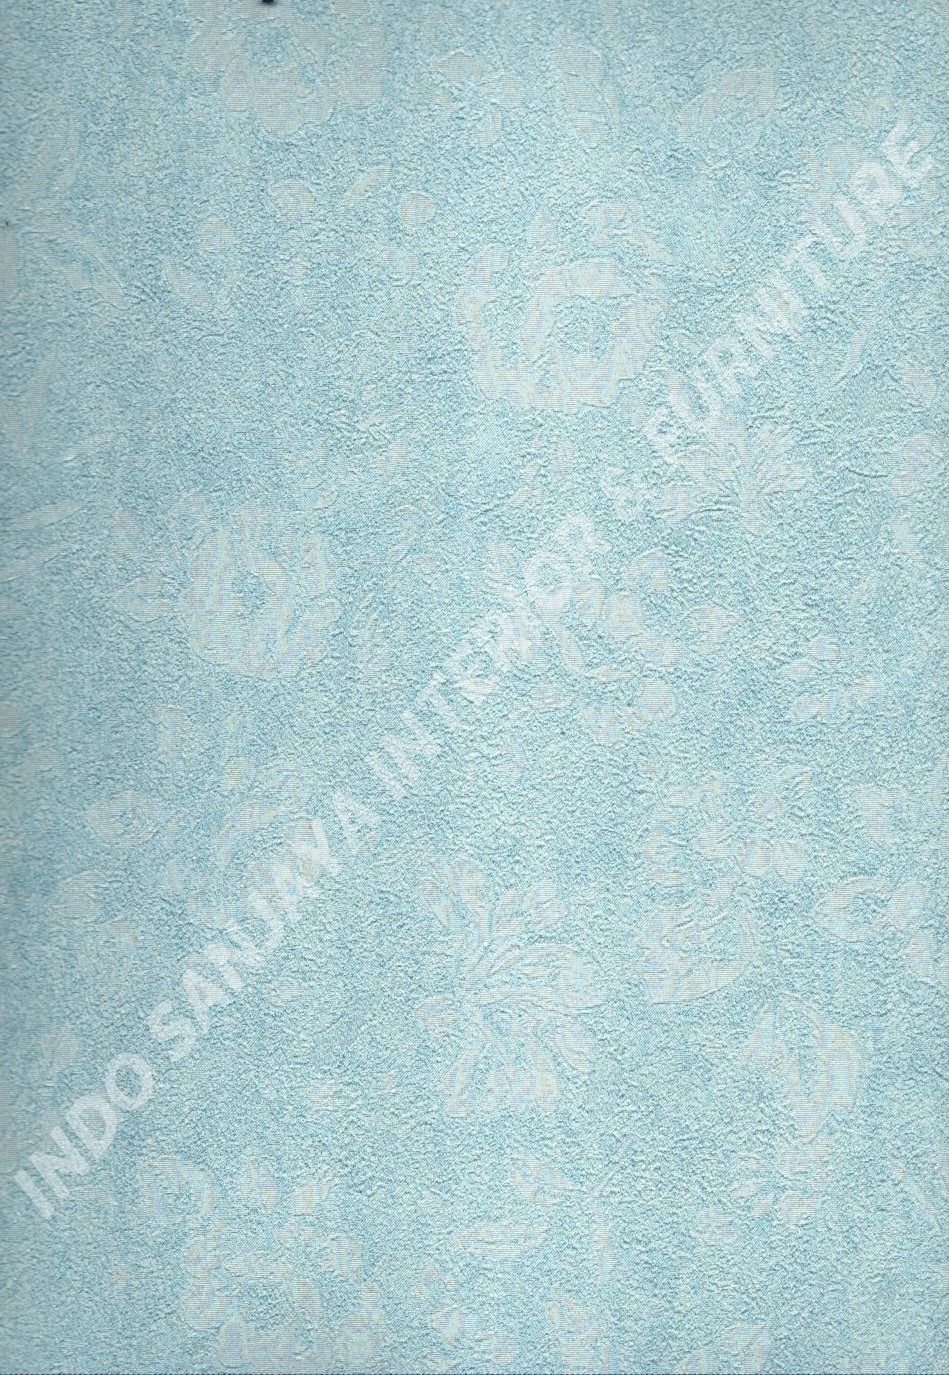 wallpaper   Wallpaper Bunga 51015-4:51015-4 corak  warna